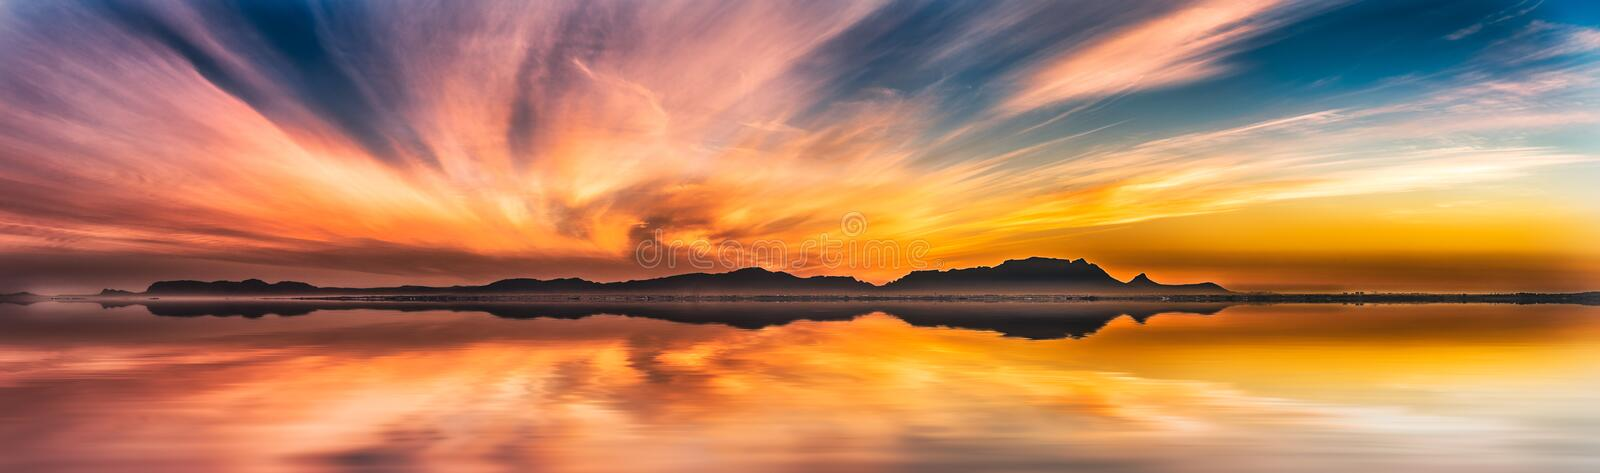 A Winter Sunset from 100 years in the future (June 18, 2116) royalty free stock image